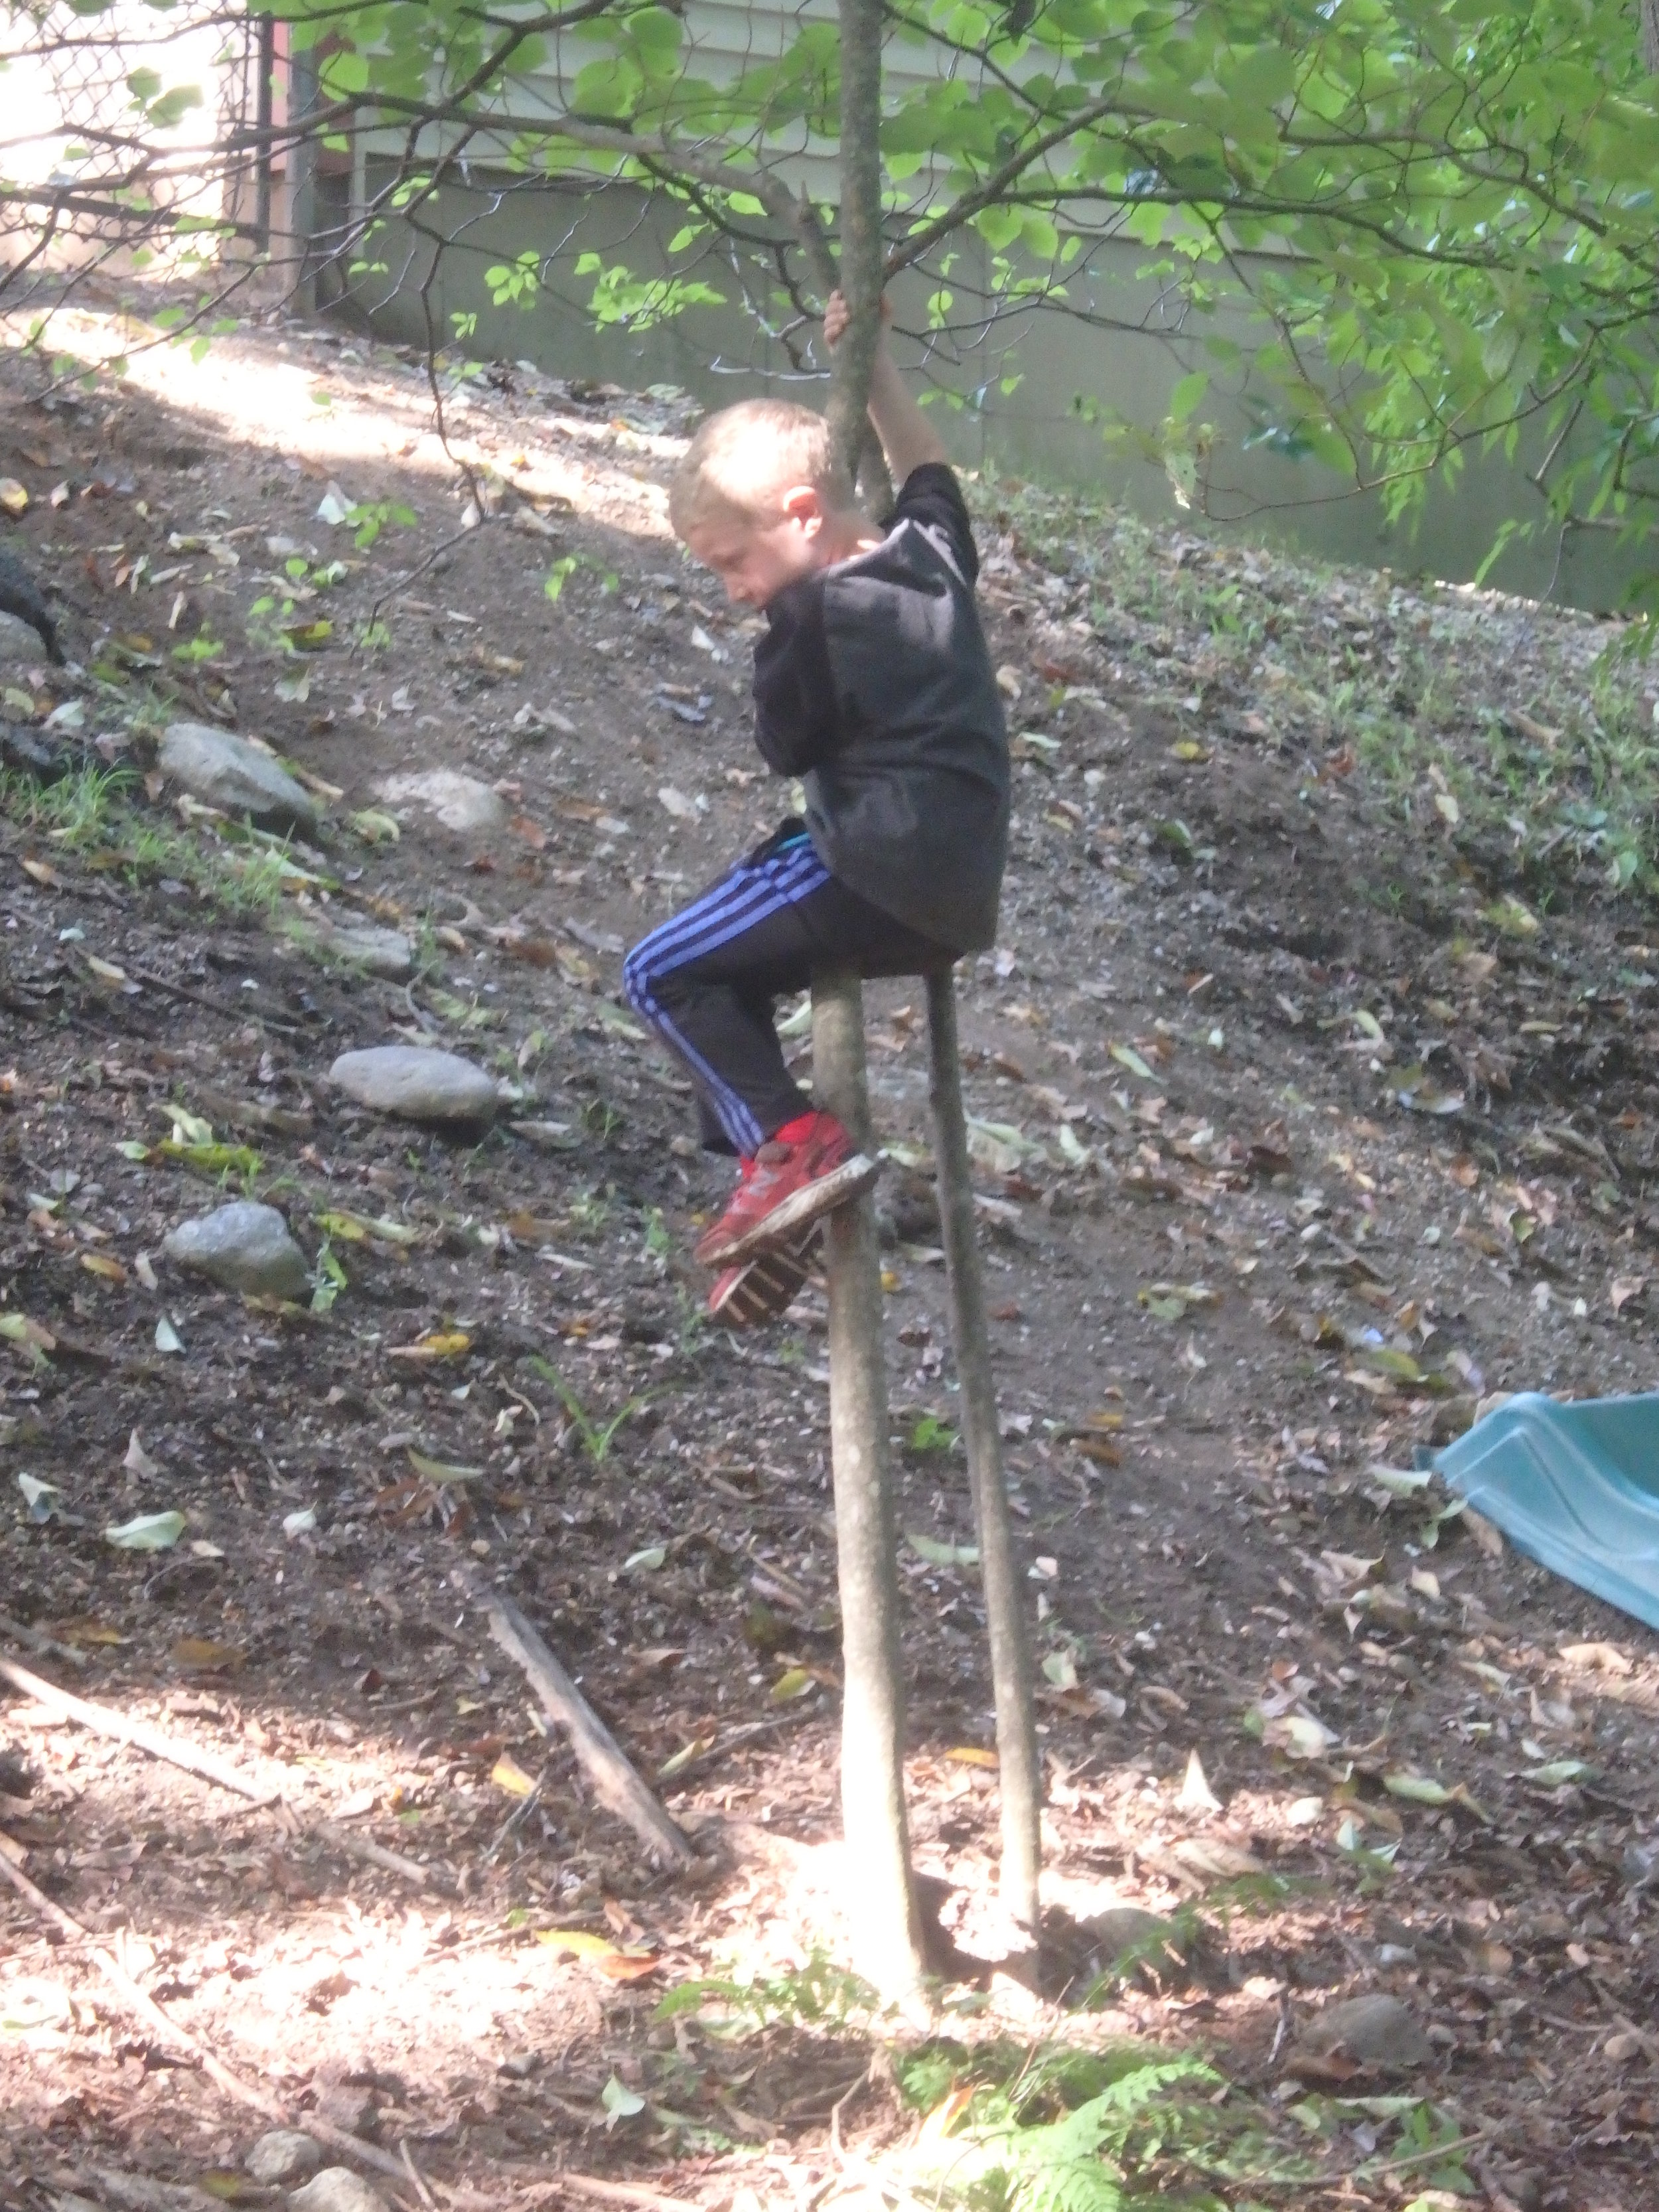 Children often set their own goals and challenges that they work on over time.  Having a chance to go to the woods often allows the children time to work on their goals.